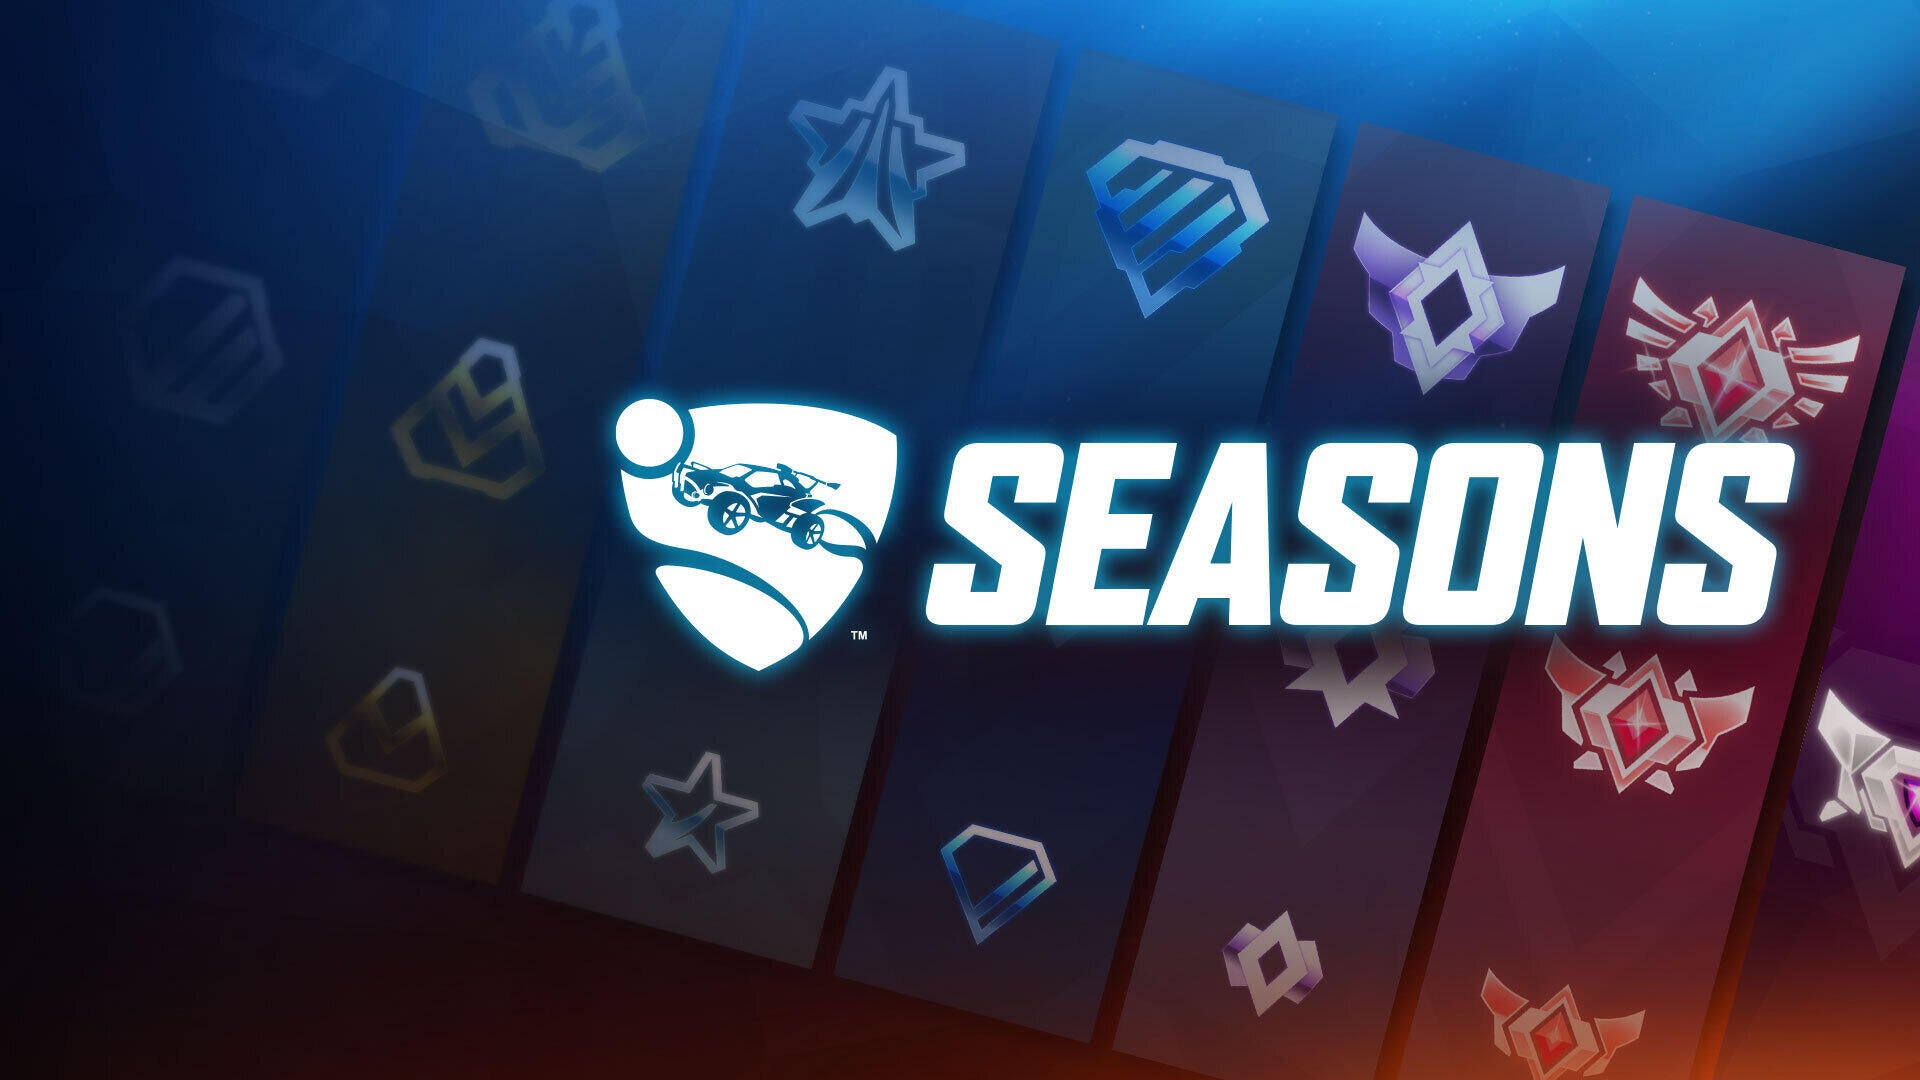 Rocket League Free To Play: Seasons, New Ranks, And More Image